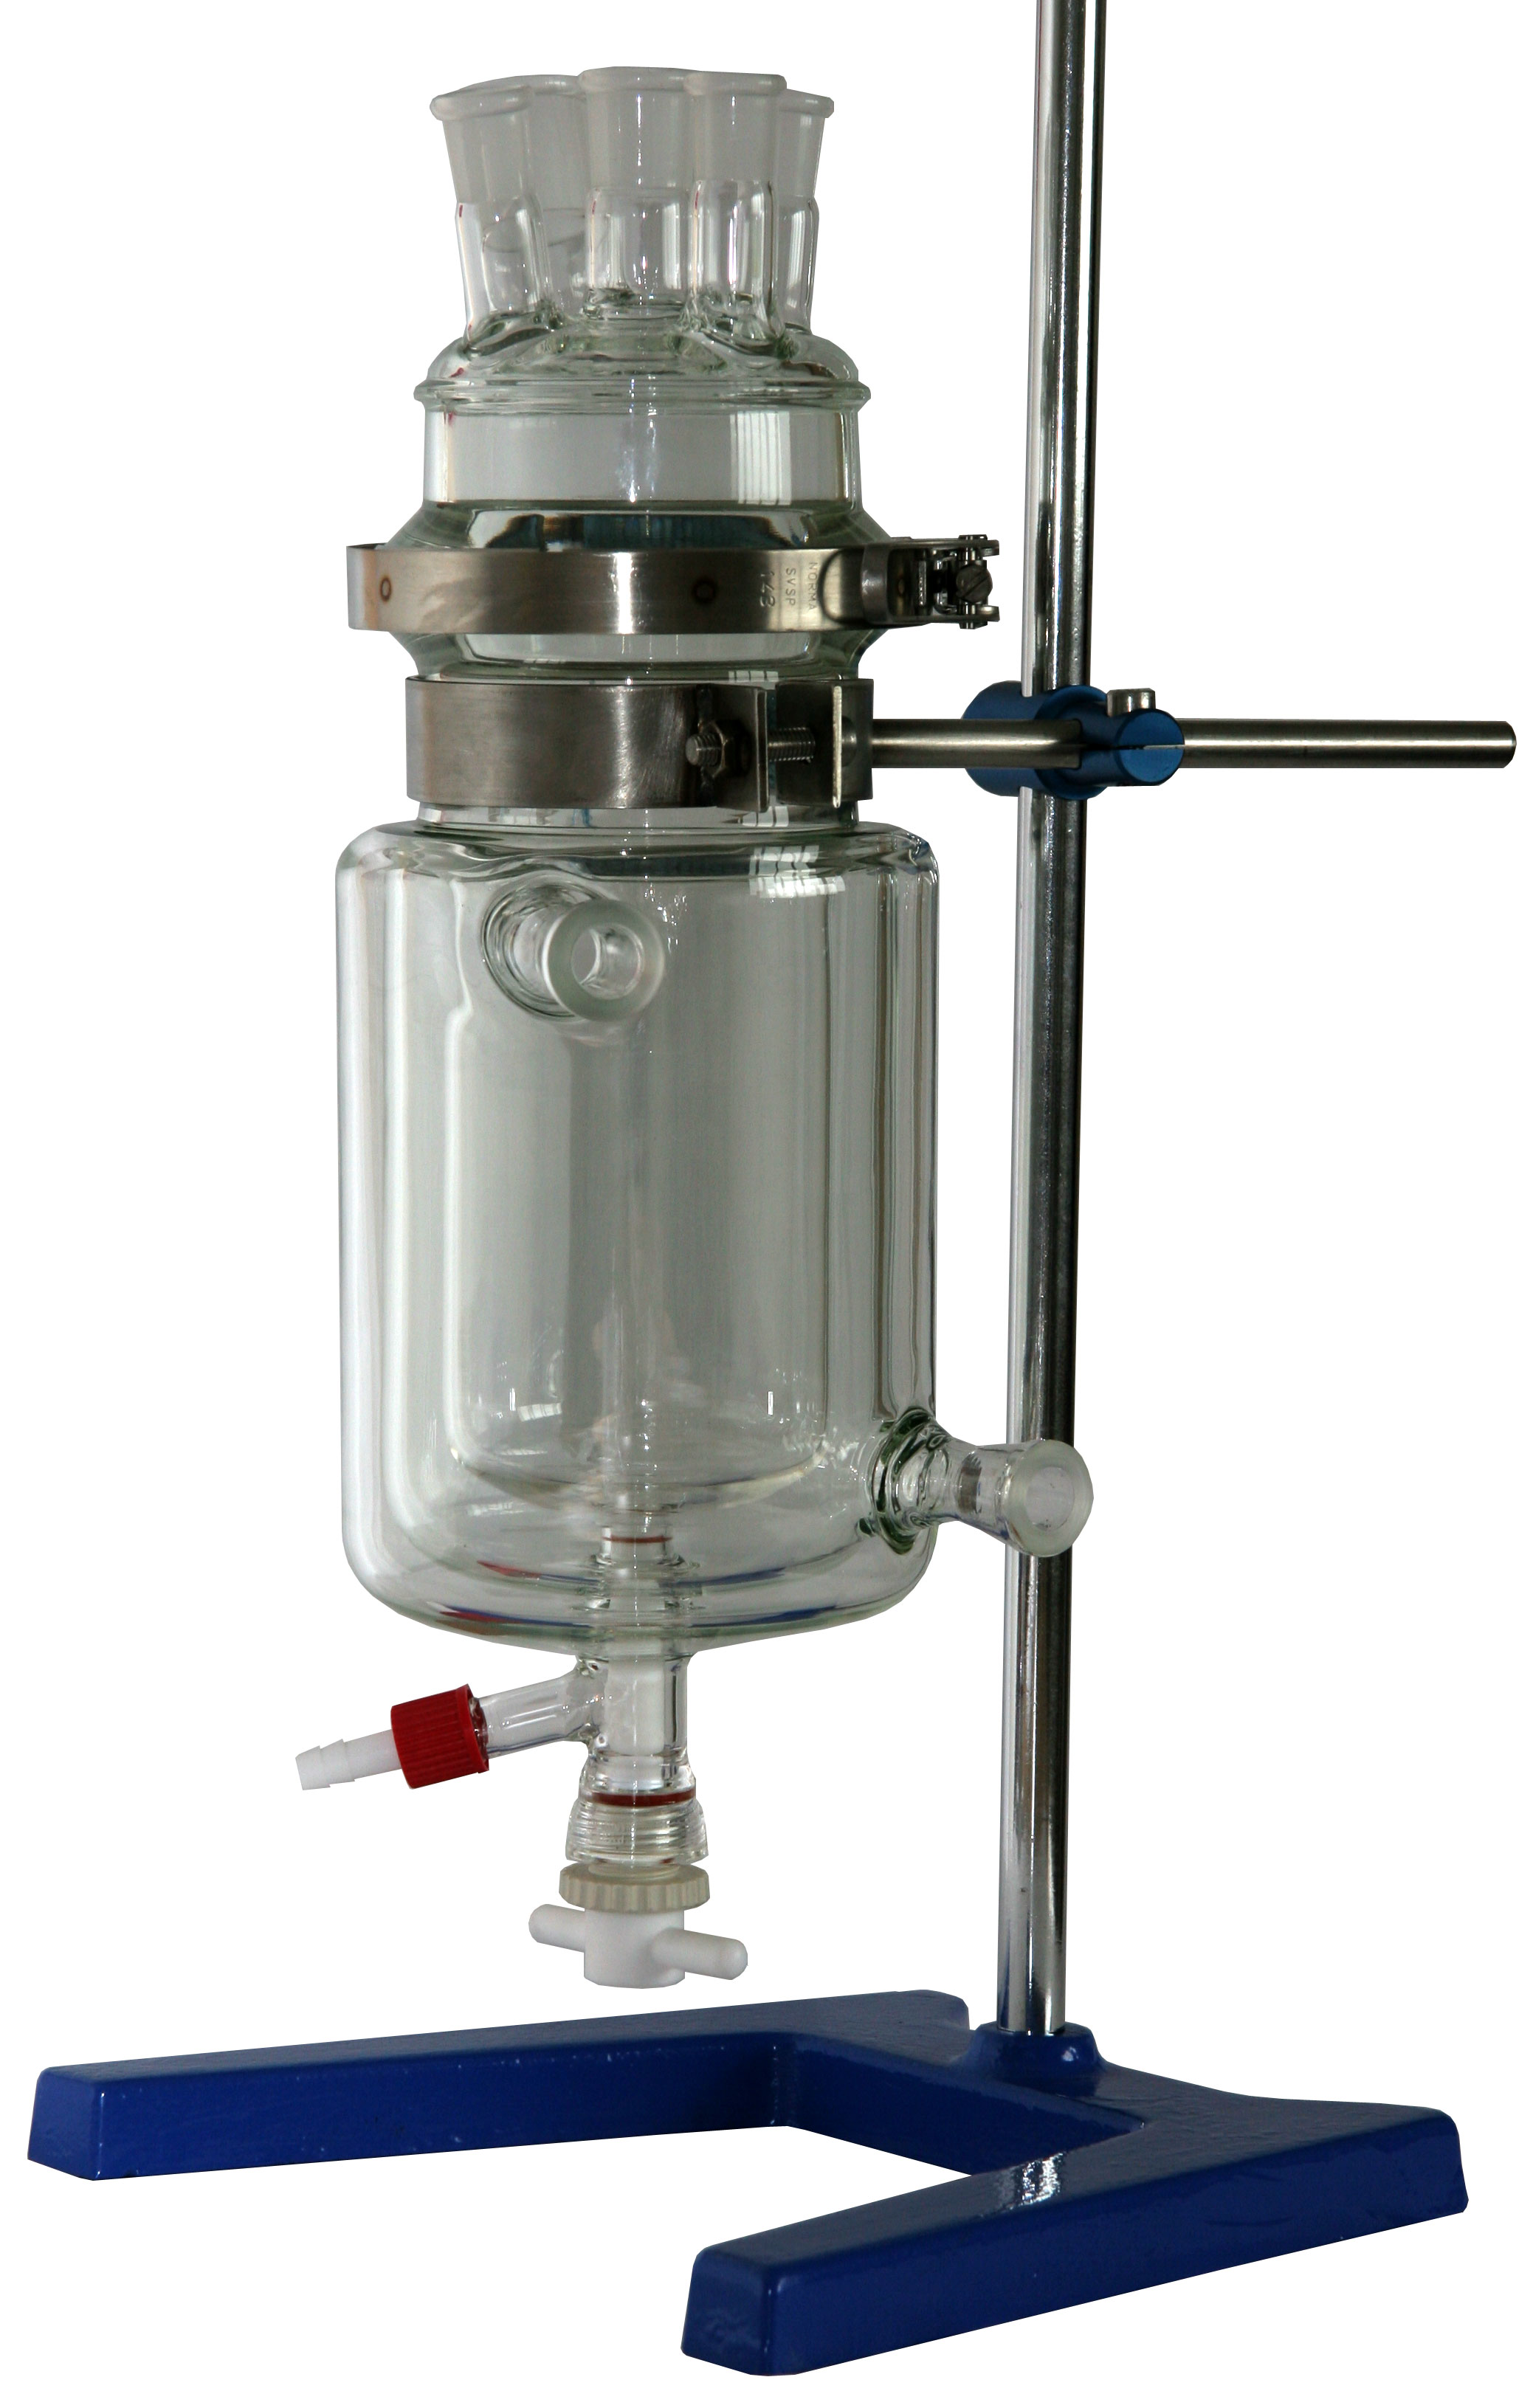 ReactoMate jacketed reaction system with Basic Support Stand